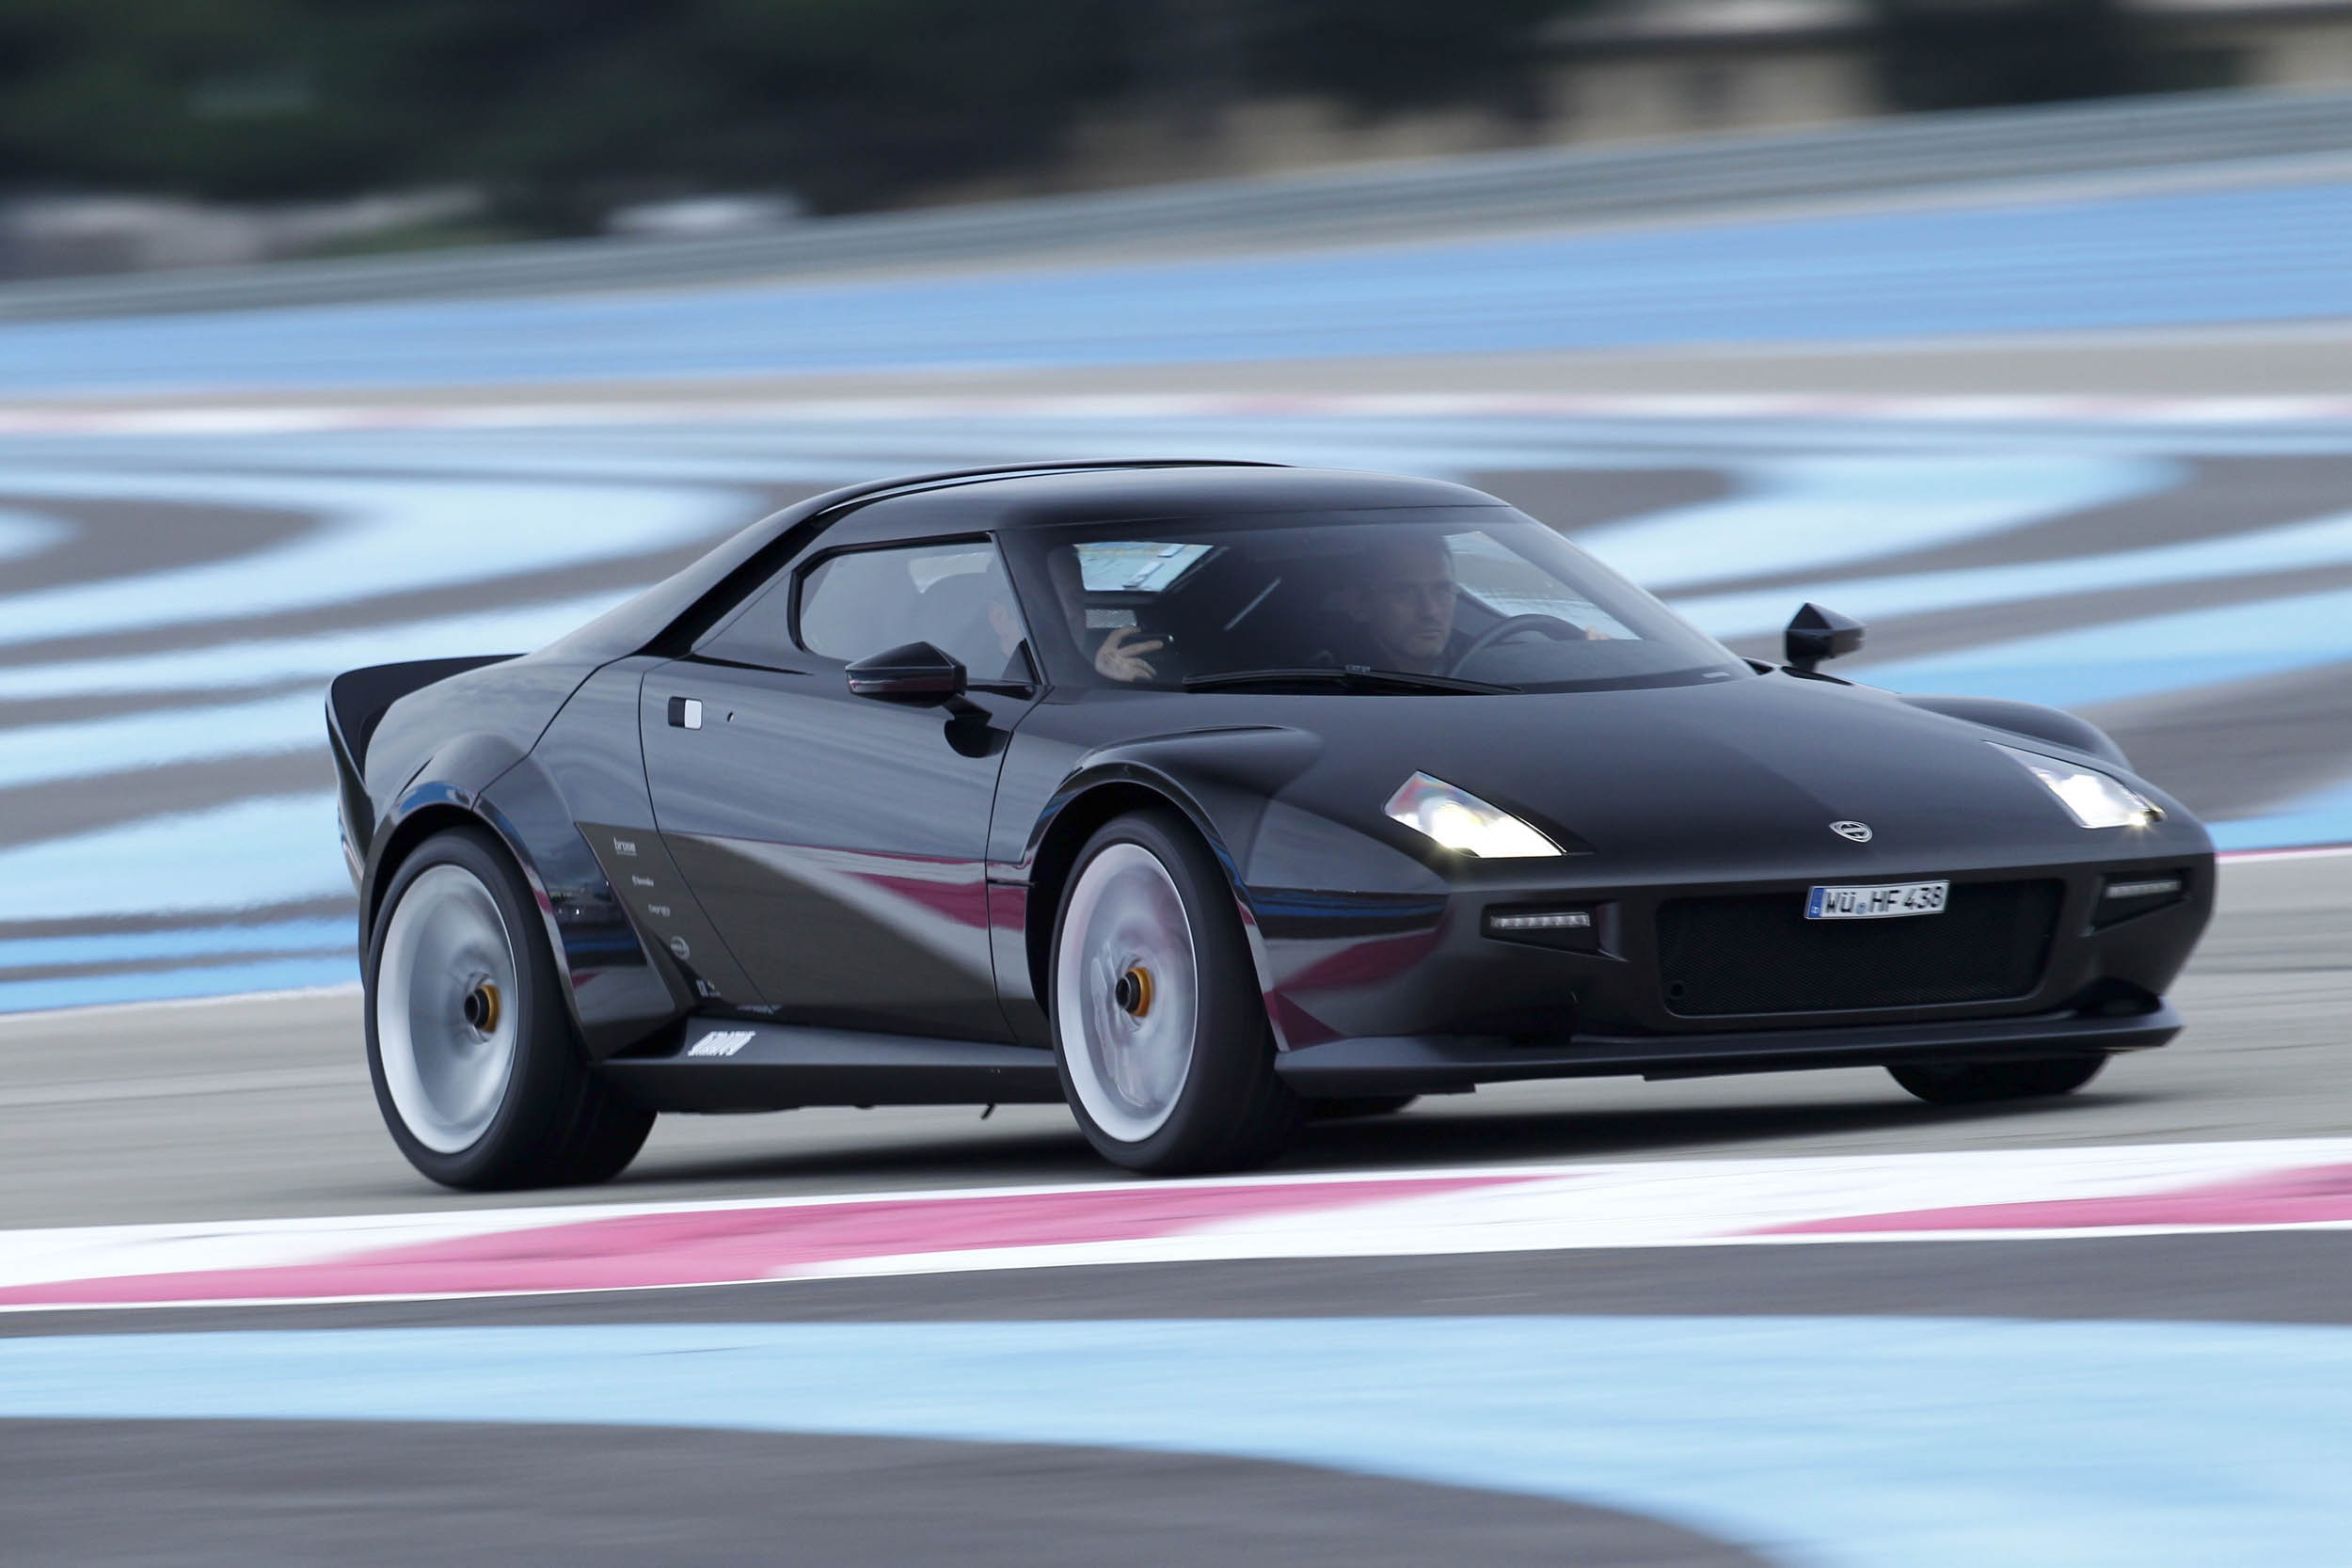 New Stratos driving